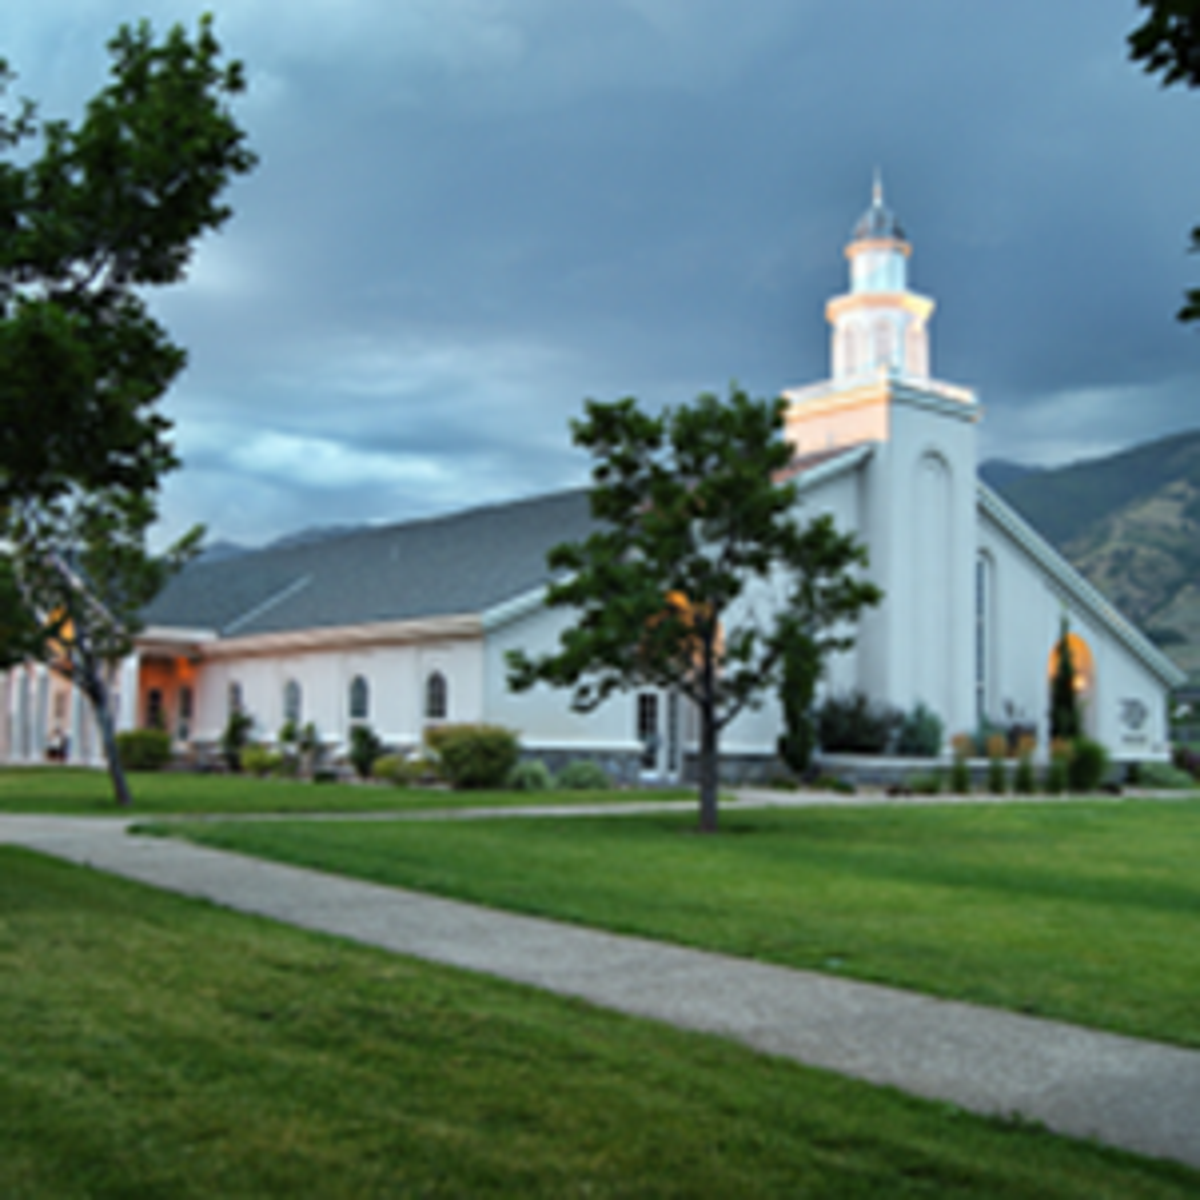 The Church of Jesus Christ of Latter-day Saints meetinghouse